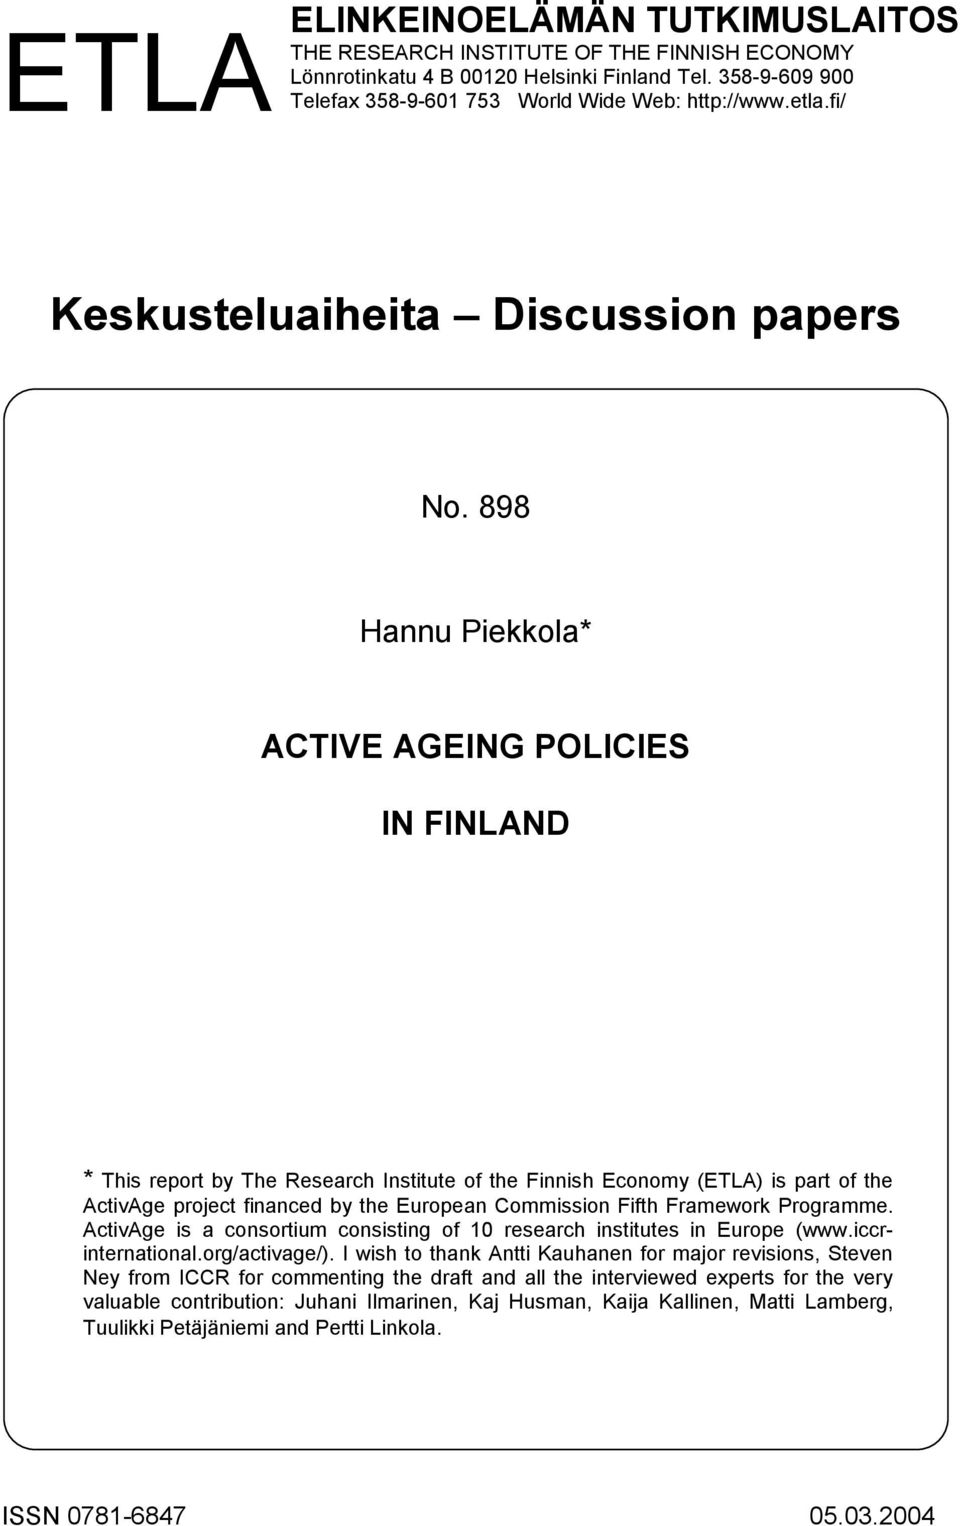 898 Hannu Piekkola* ACTIVE AGEING POLICIES IN FINLAND * This report by The Research Institute of the Finnish Economy (ETLA) is part of the ActivAge project financed by the European Commission Fifth